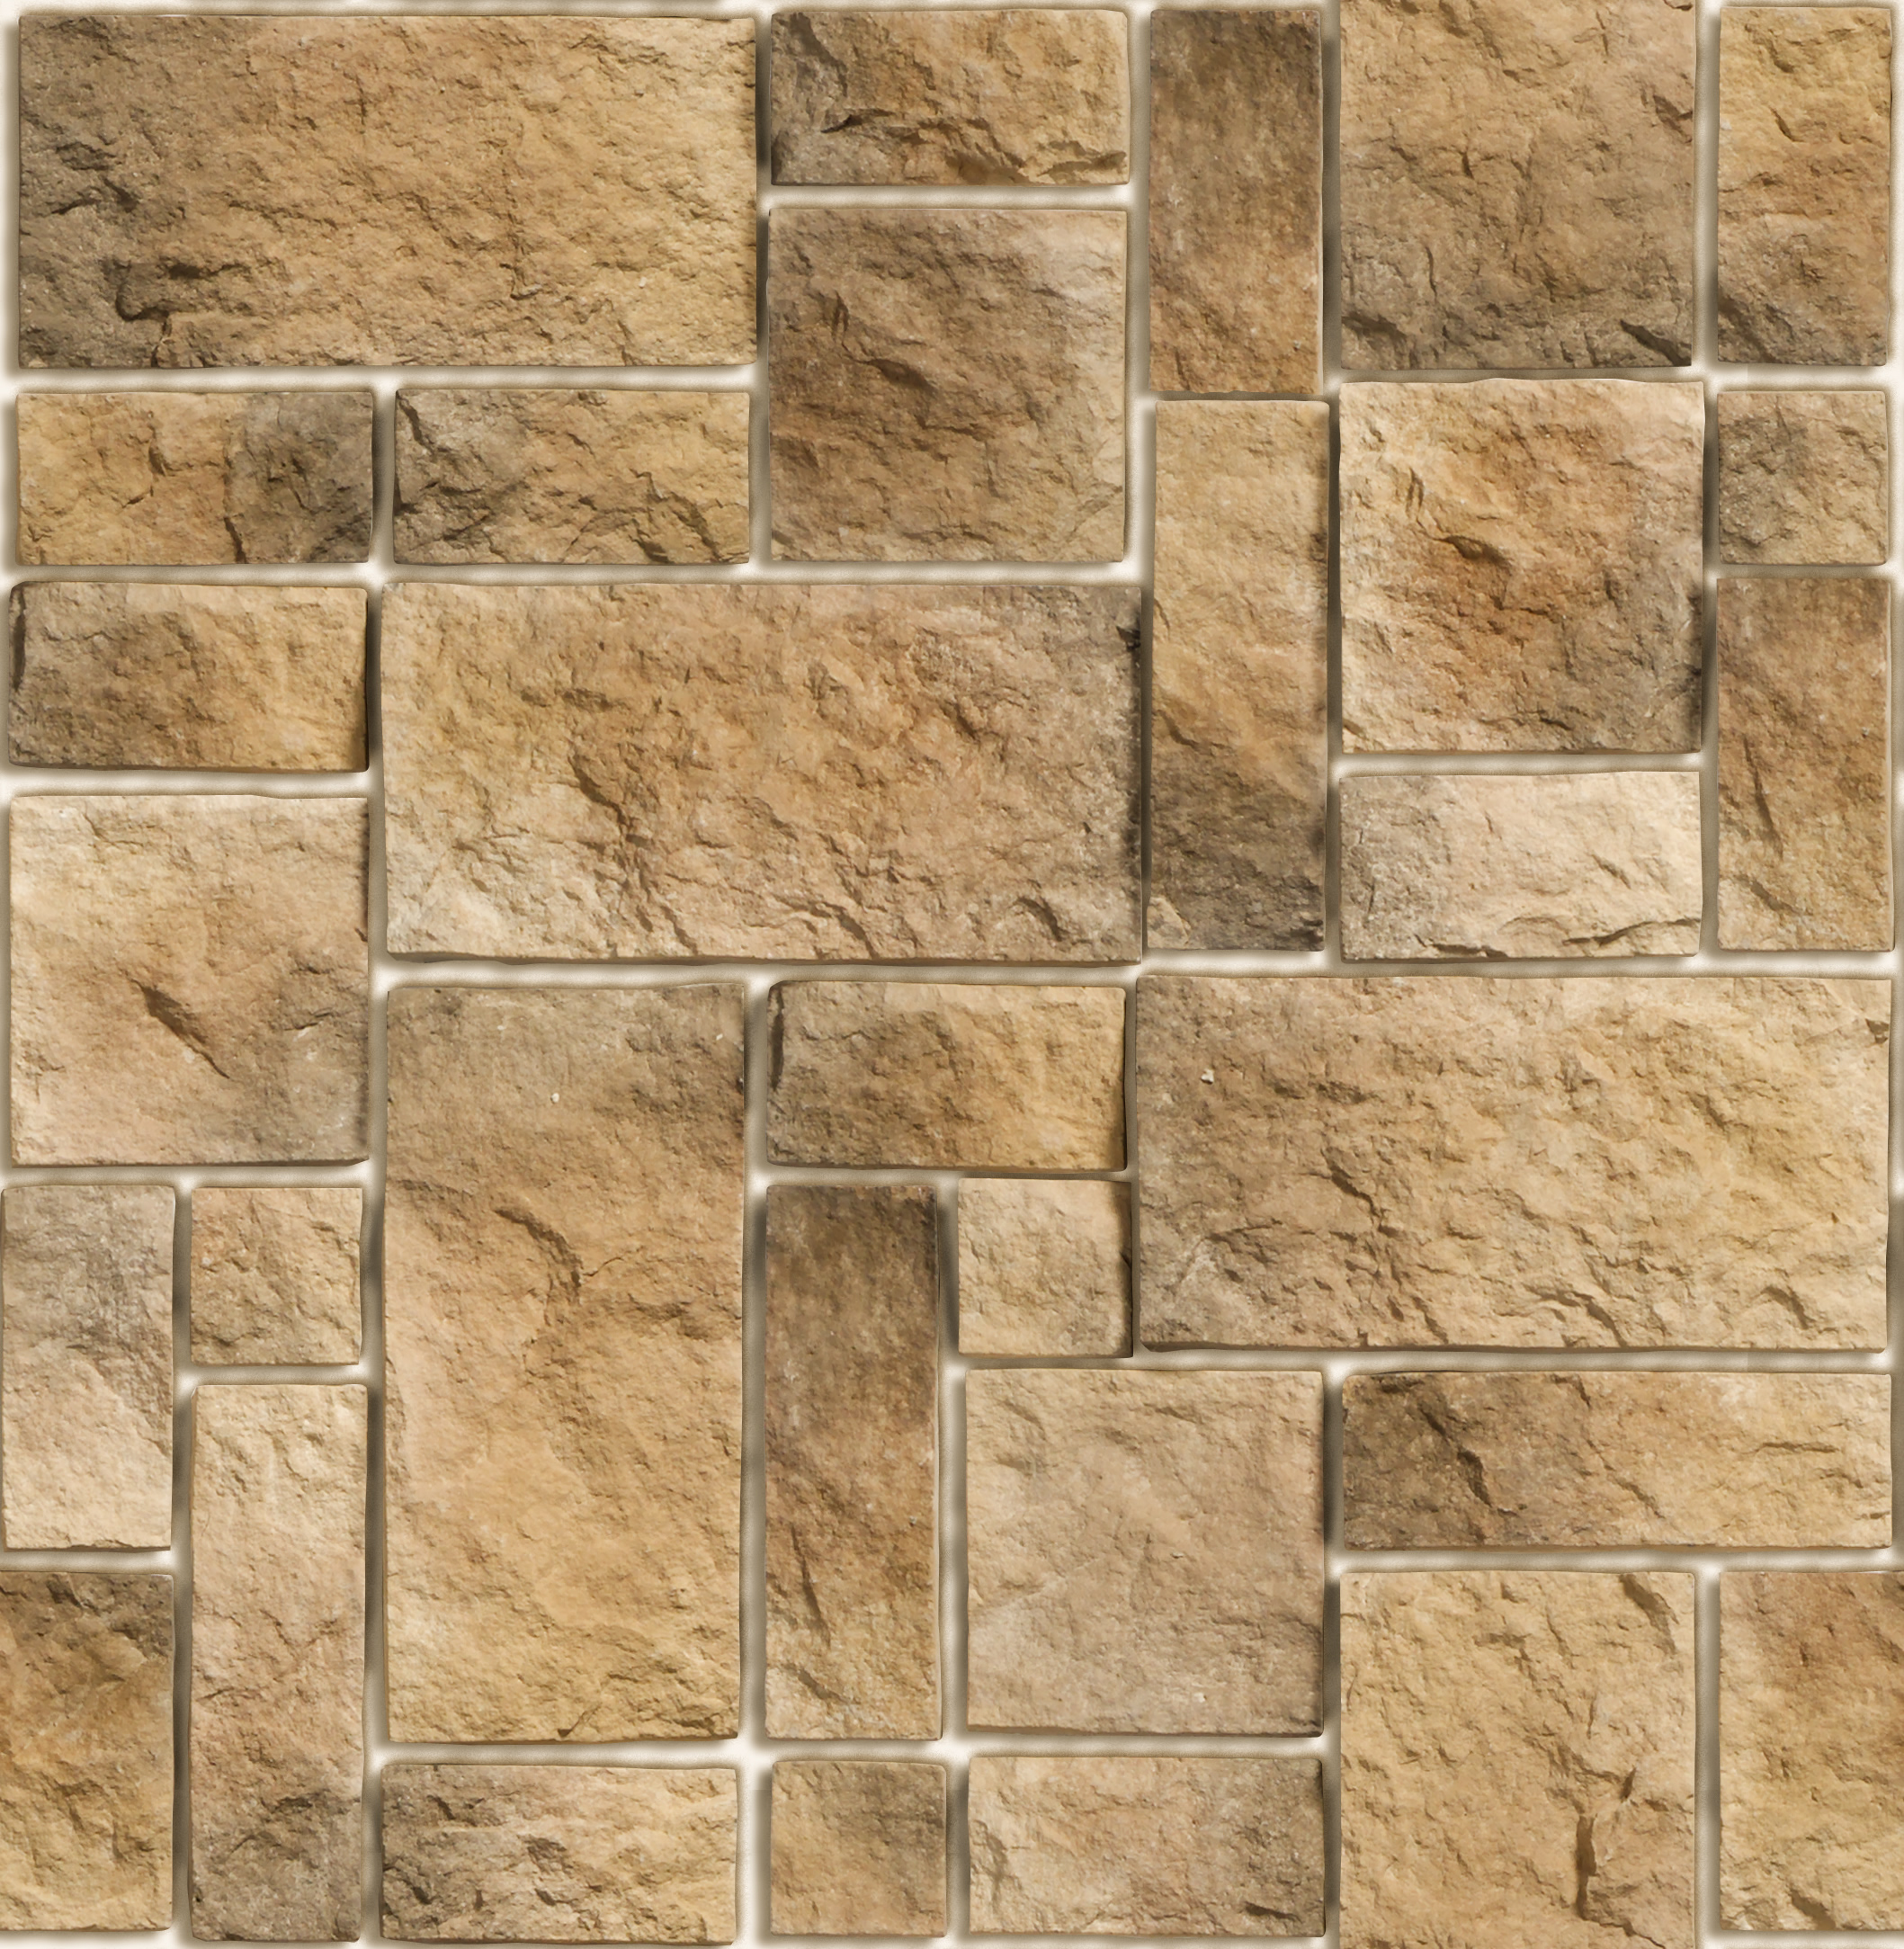 Stone Tile Texture Hewn Wall Photo